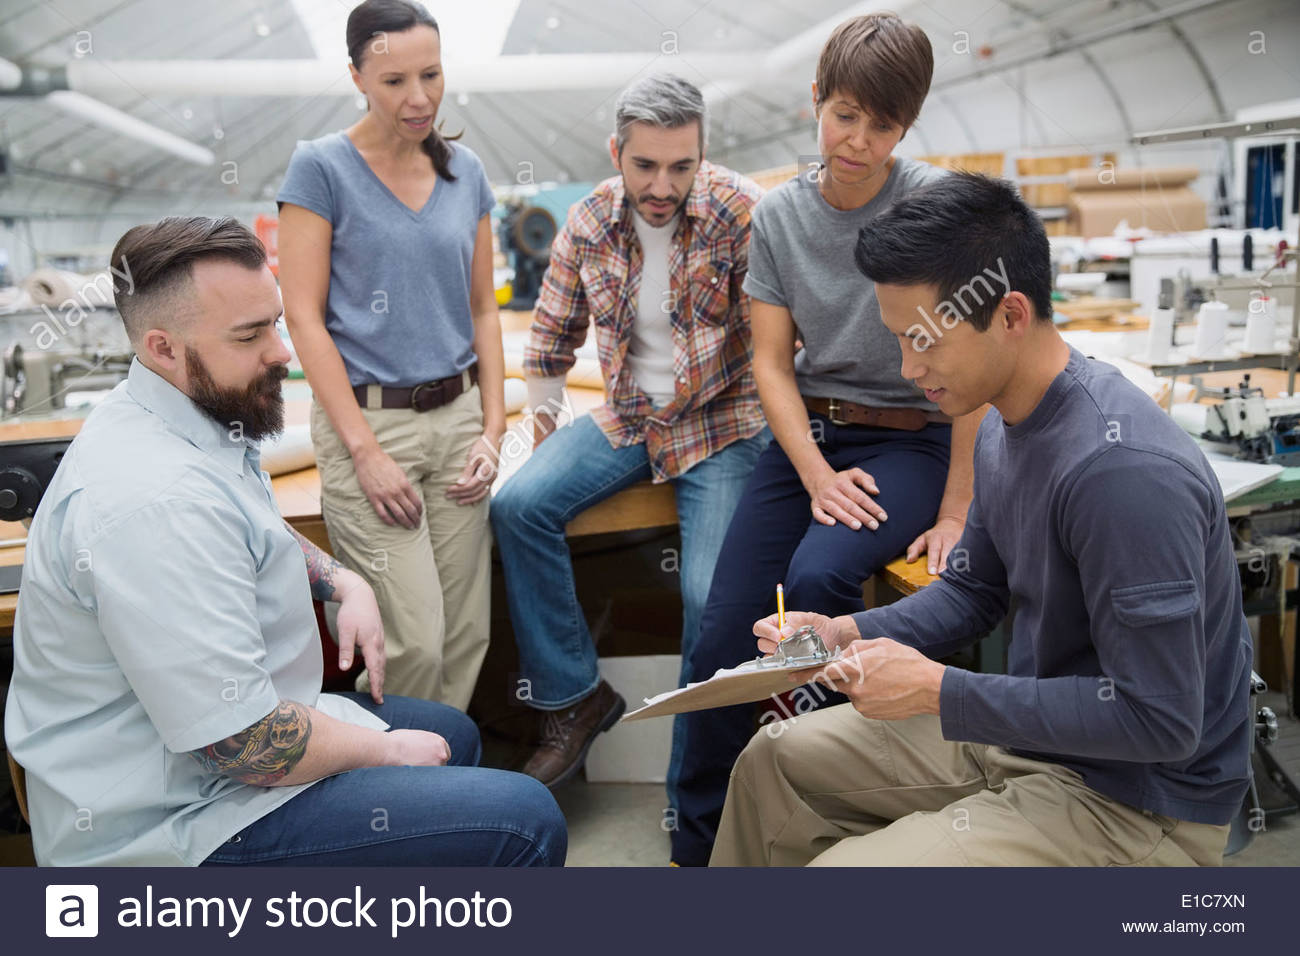 Workers meeting in textile manufacturing plant - Stock Image